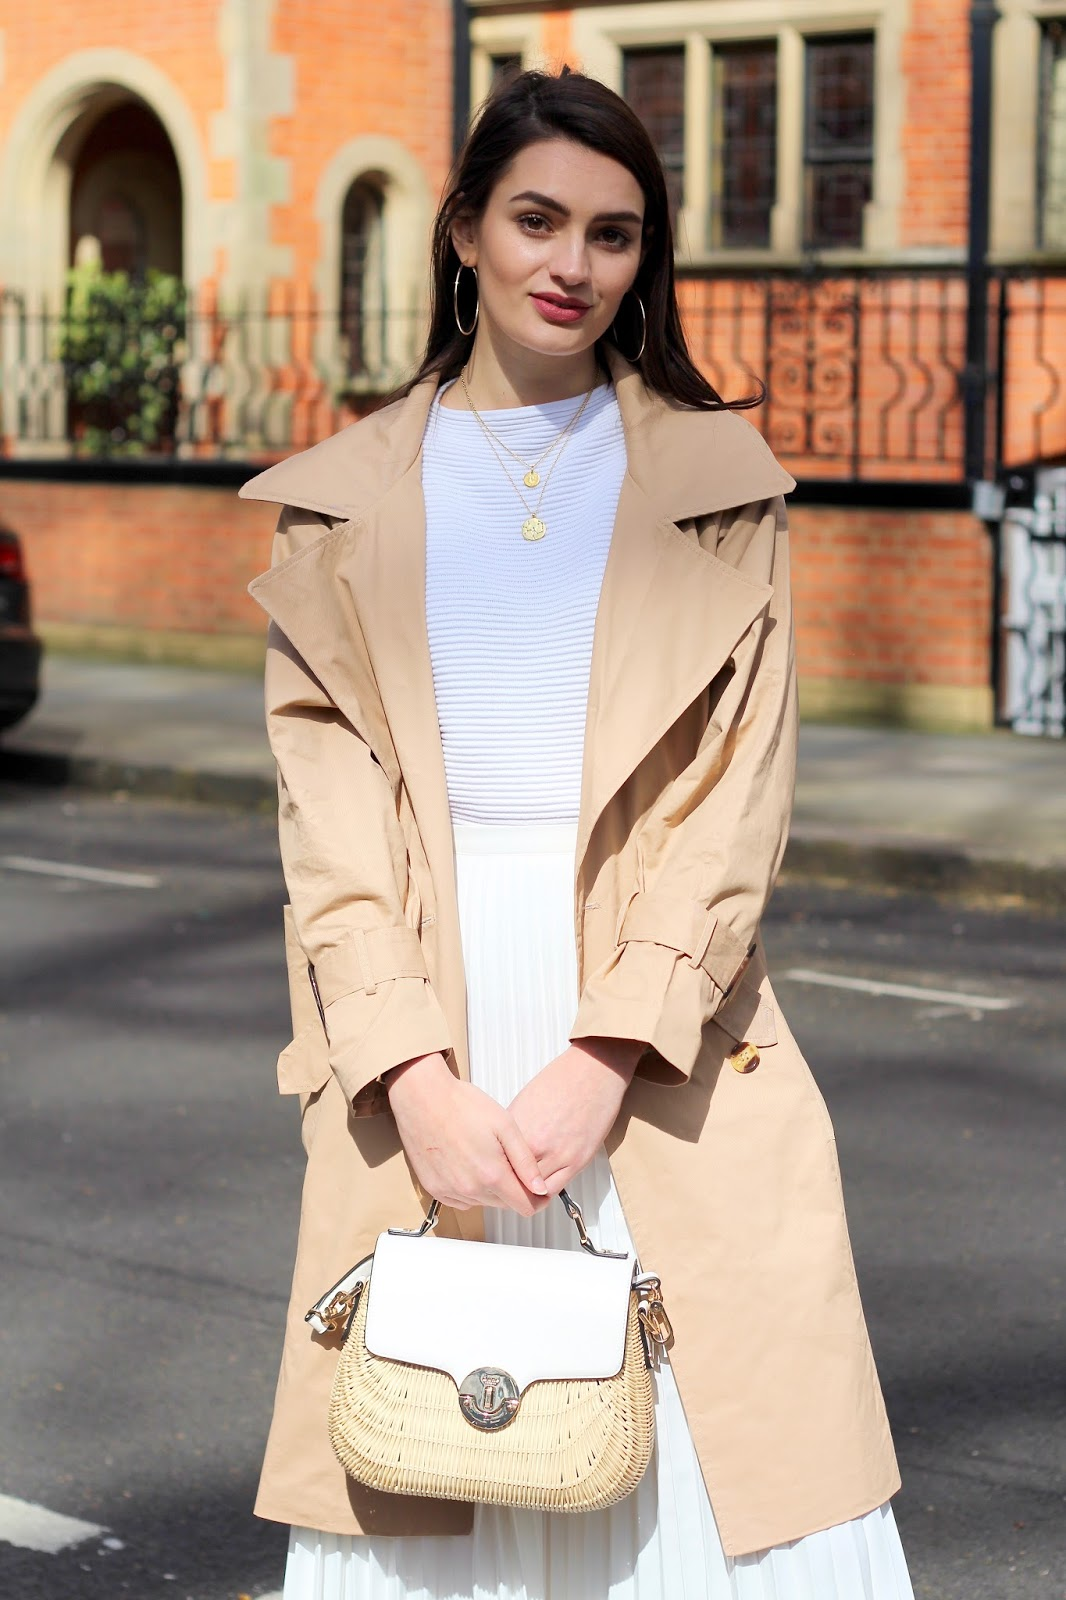 spring style peexo ways to wear neutrals